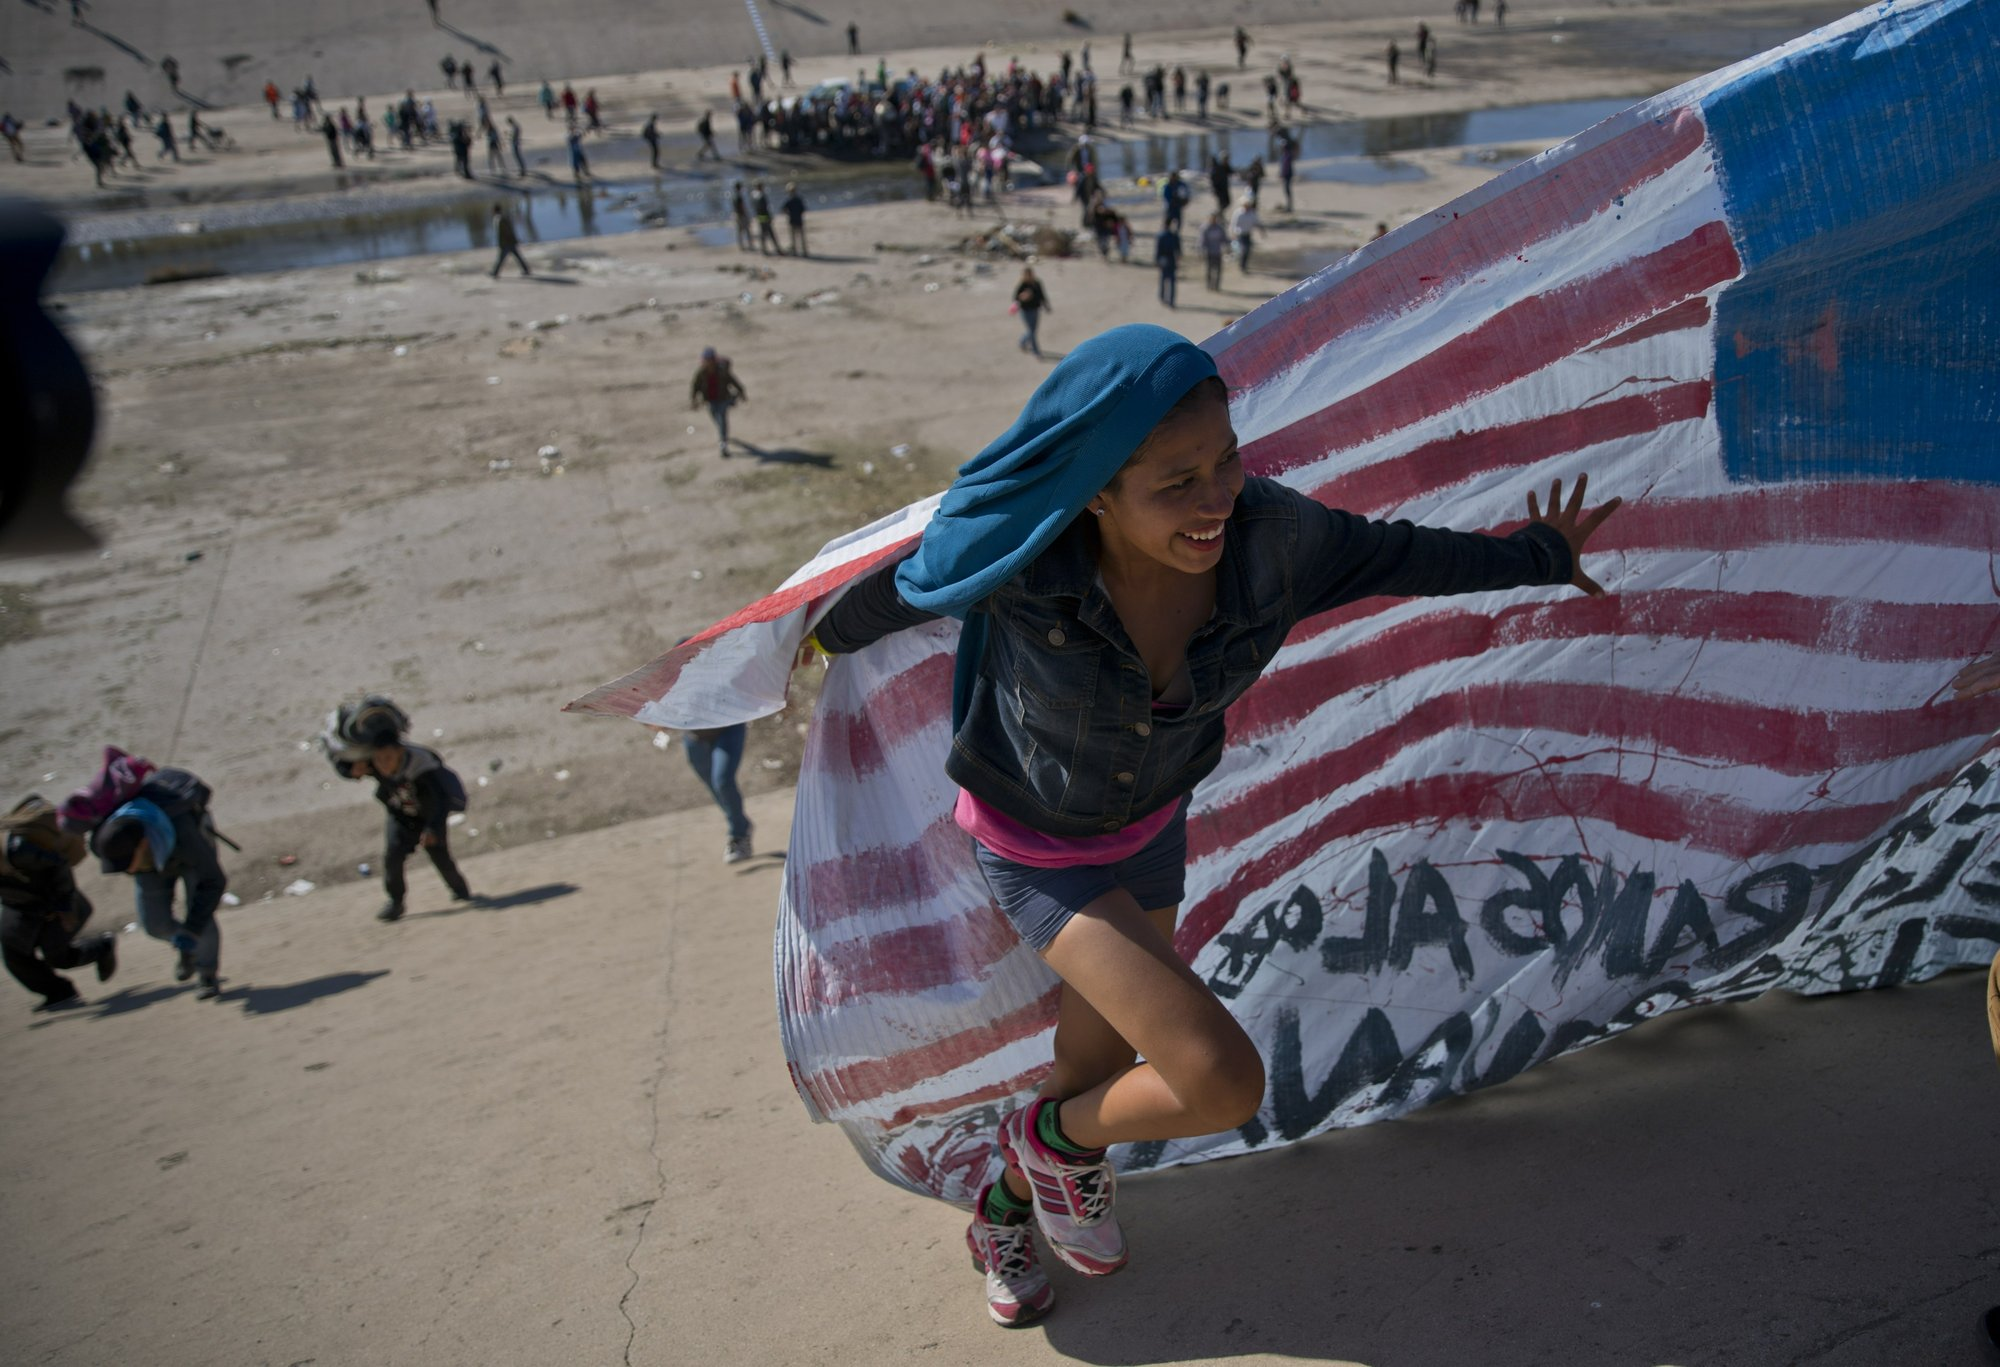 A migrant woman helps carry a handmade US flag up the riverbank at the Mexico-U.S. border after getting past Mexican police at the Chaparral border crossing in Tijuana, Mexico, Sunday, Nov. 25, 2018, as a group of migrants tries to reach the US. Photo: AP